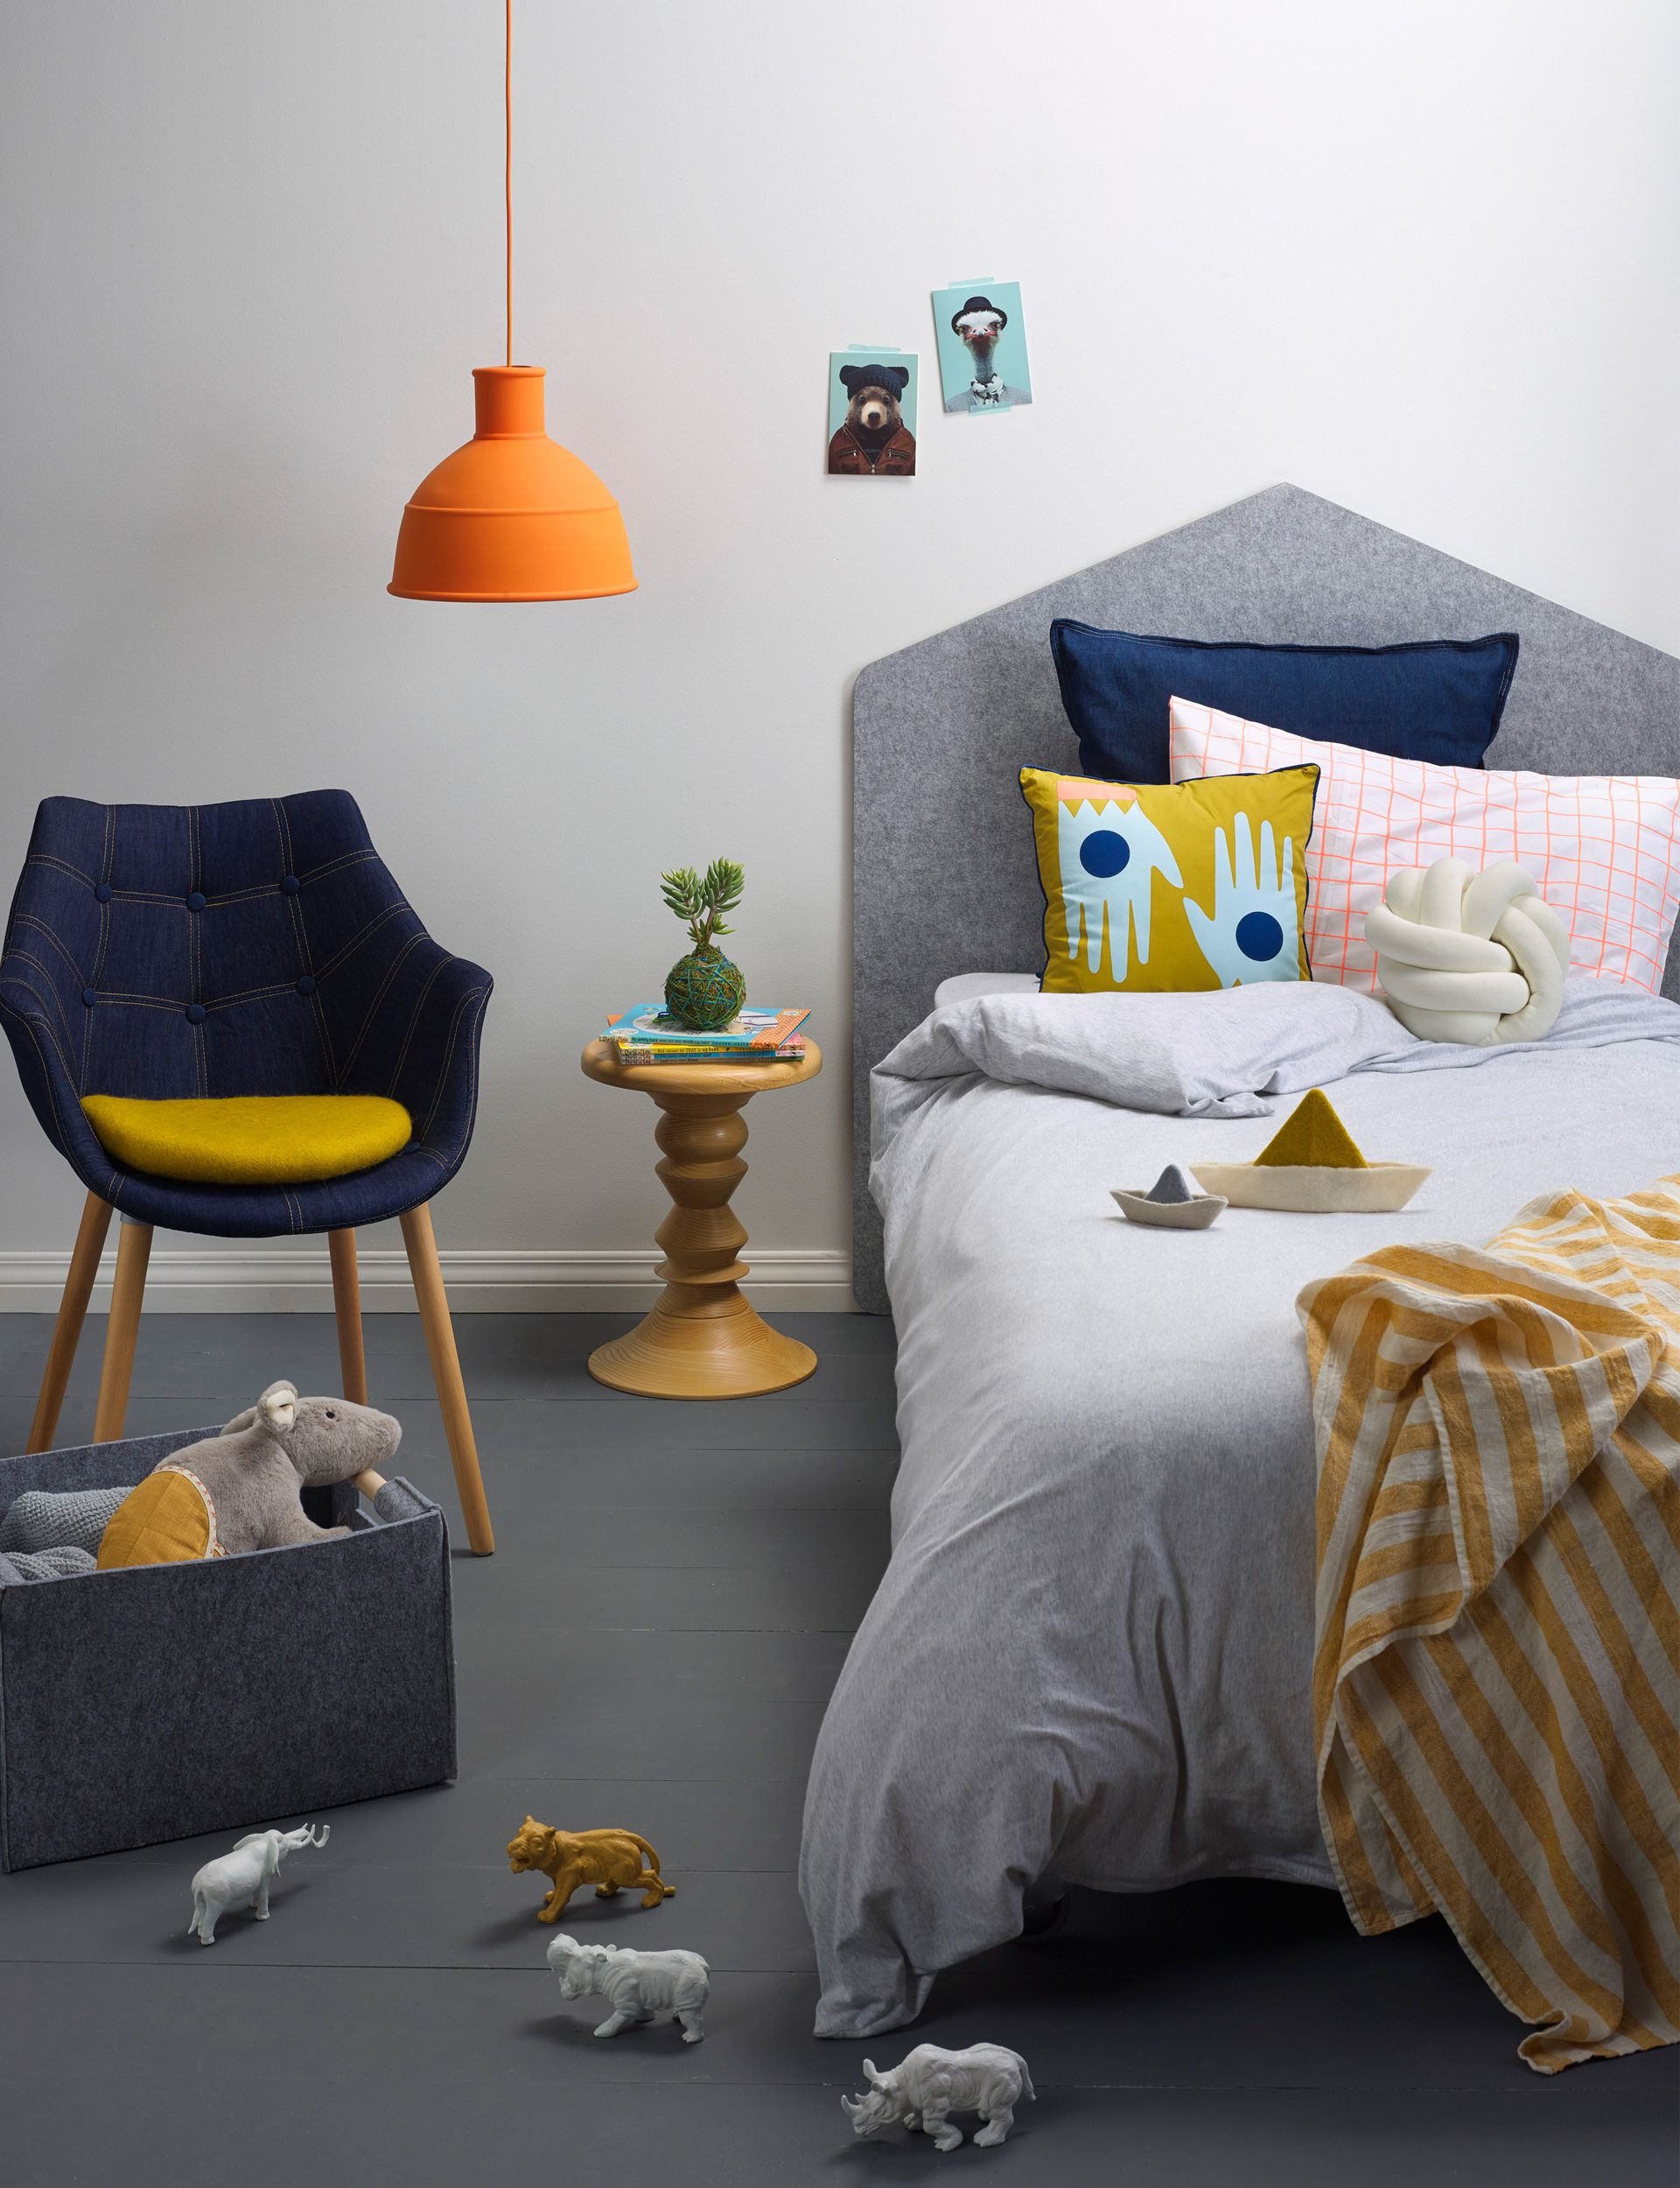 How To Create A Modern Bedroom Scheme For A 3 7 Year Old Modern Kids Bedroom Bedroom Design Kid Room Decor